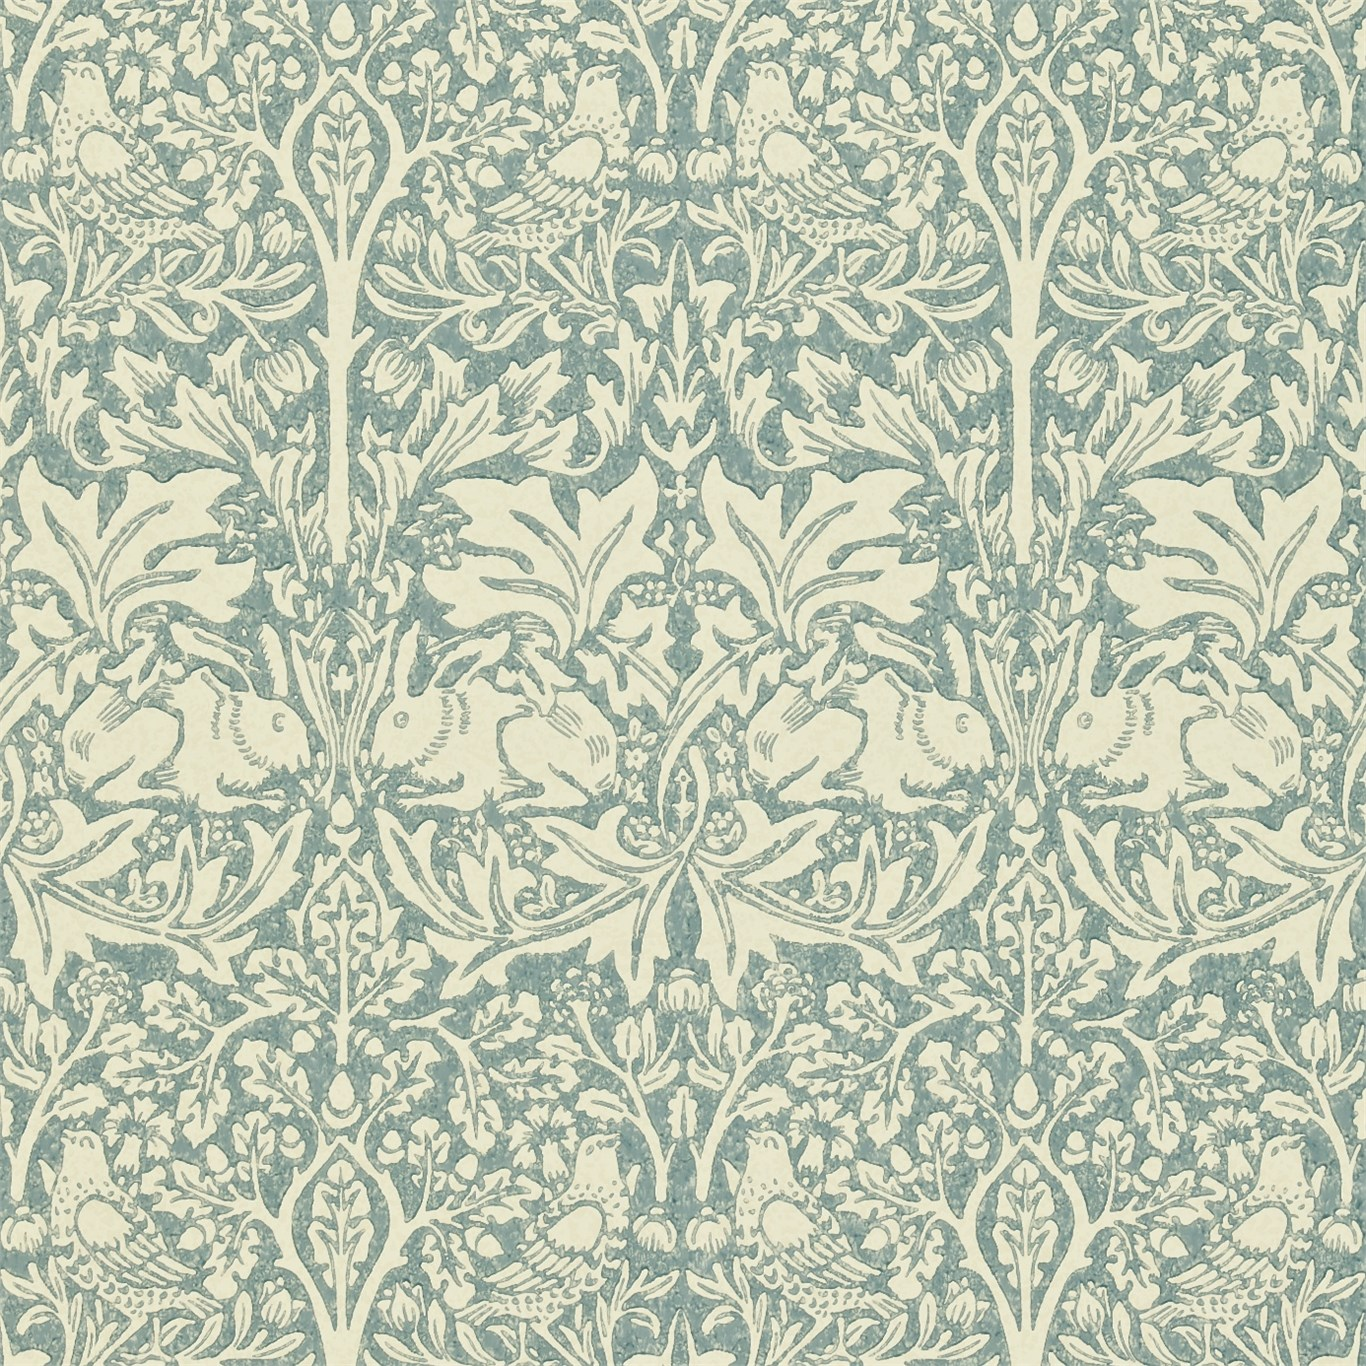 Free Download The Original Morris Co Arts And Crafts Fabrics And Wallpaper 1366x1366 For Your Desktop Mobile Tablet Explore 50 Arts And Crafts Wallpaper Books William Morris Reproduction Wallpaper